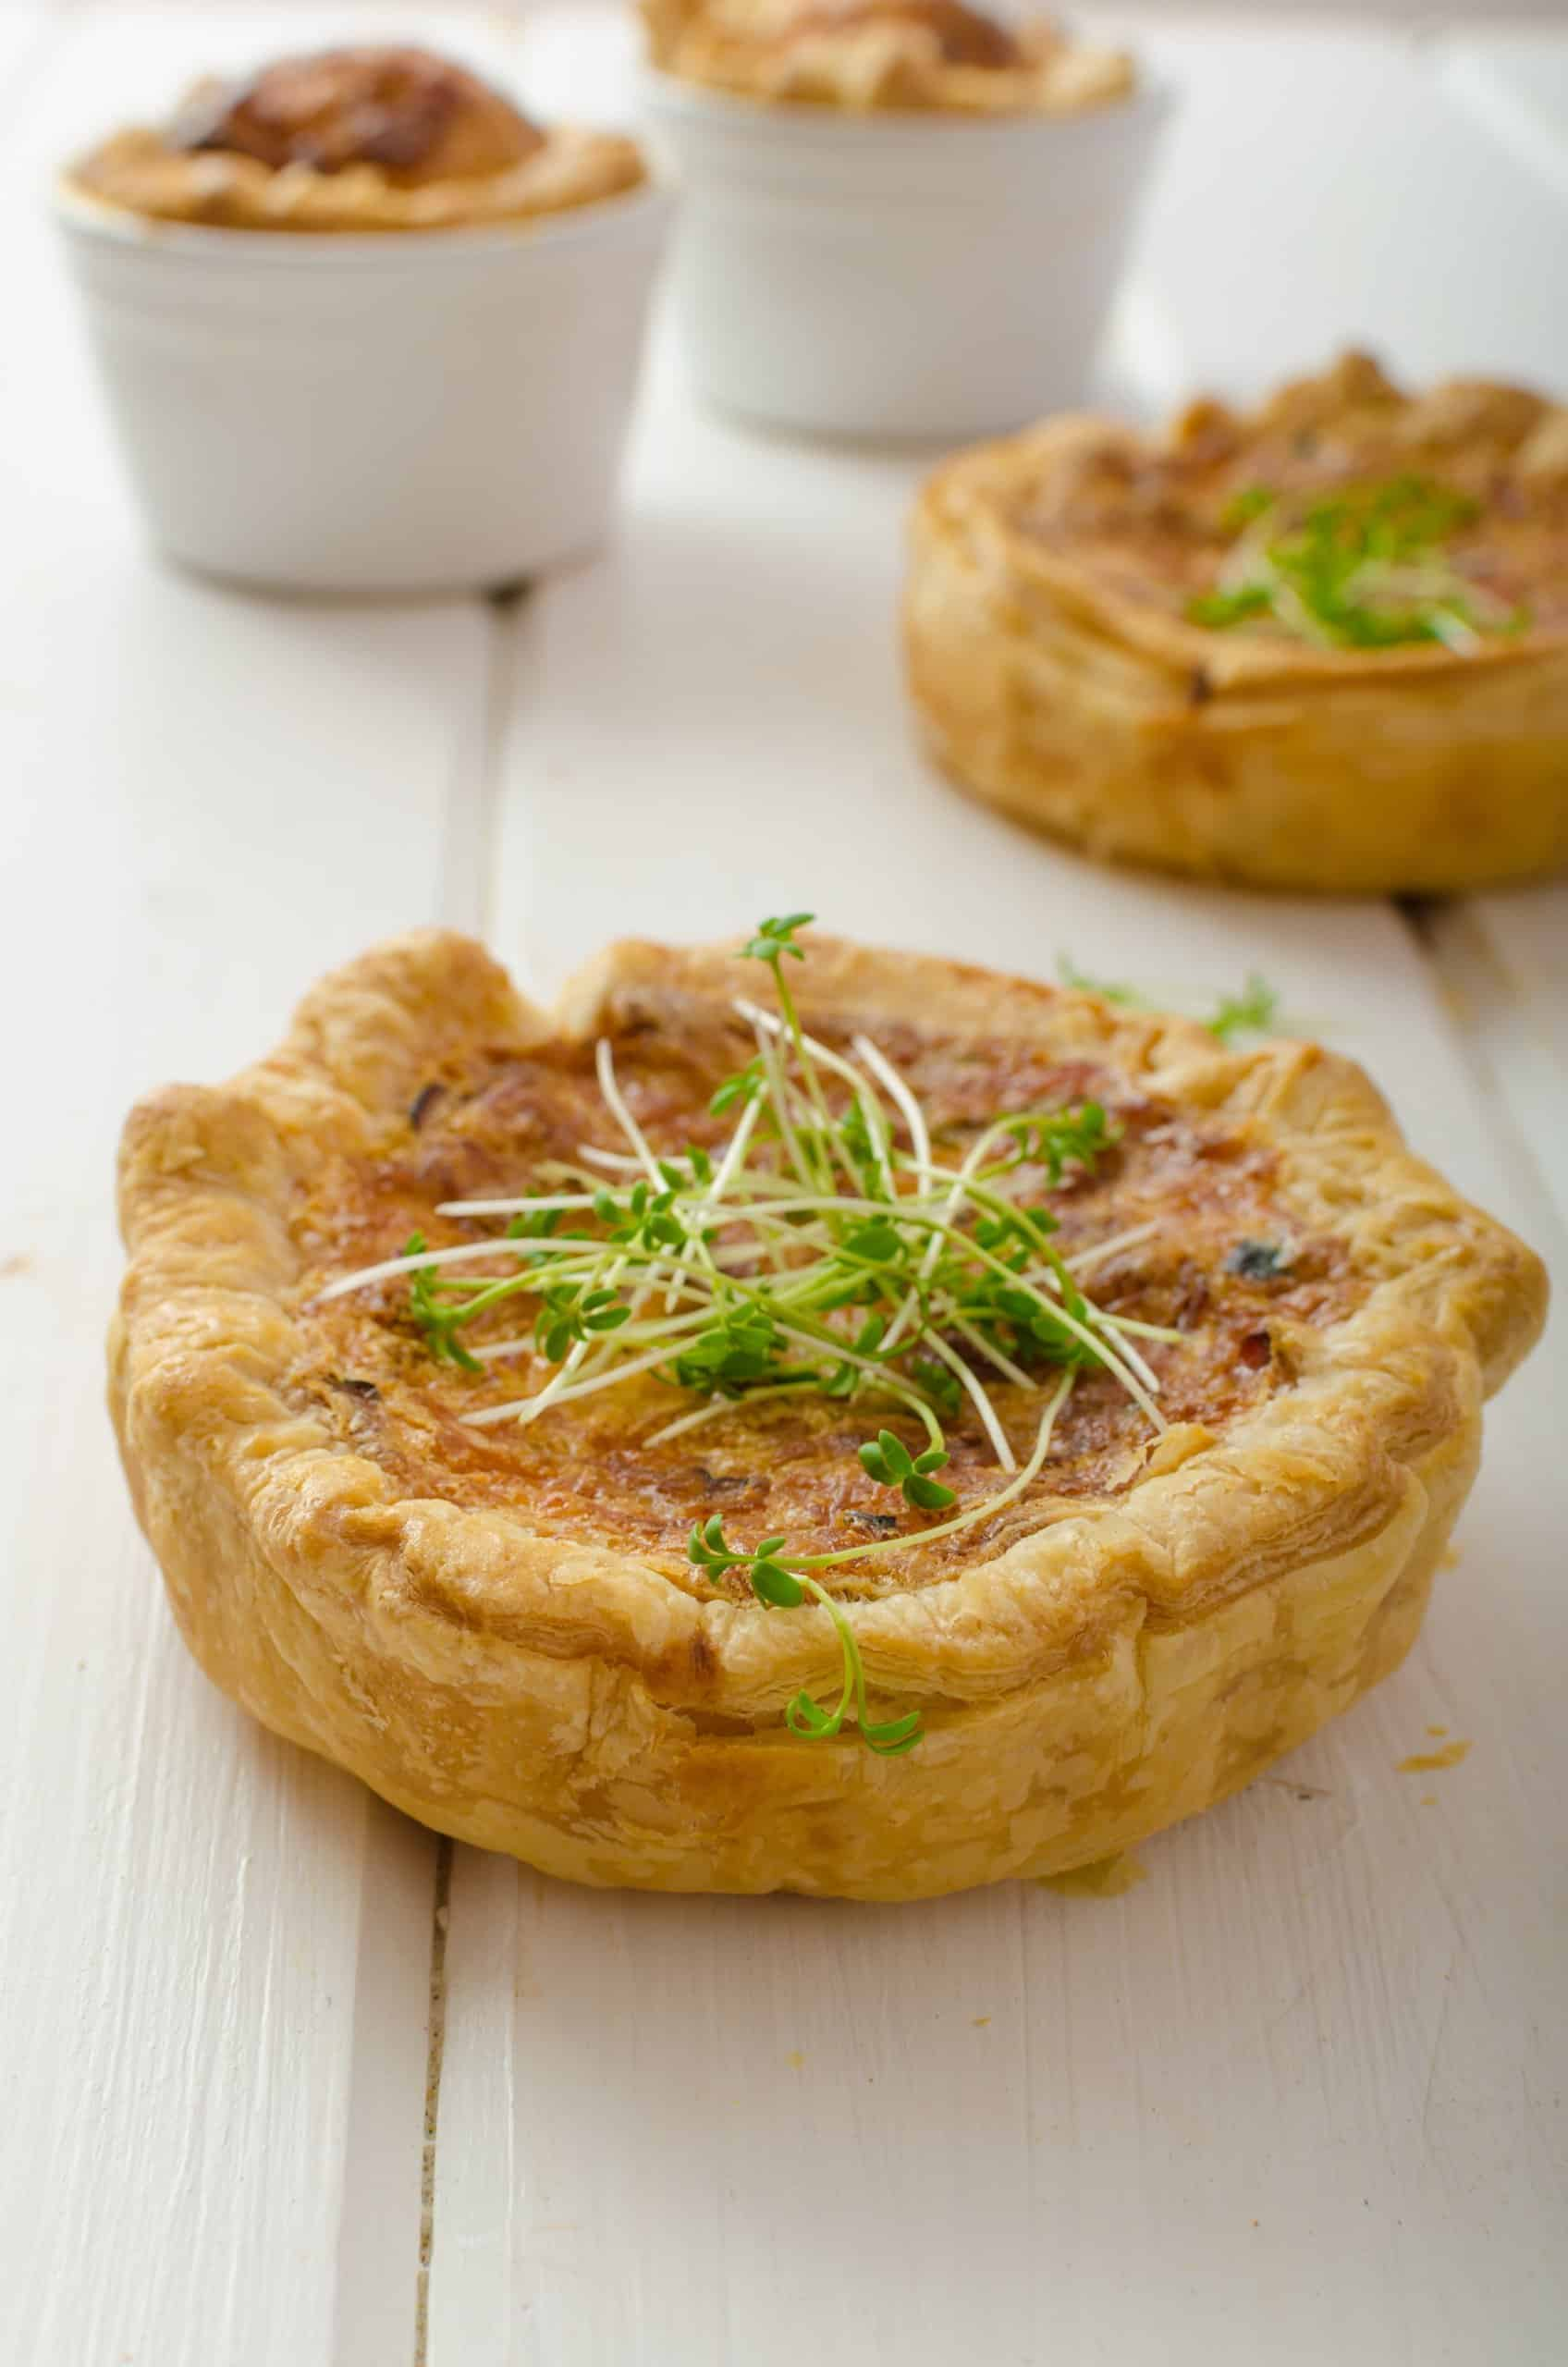 Mini Quiche Appetizers (Onion & Cheese)